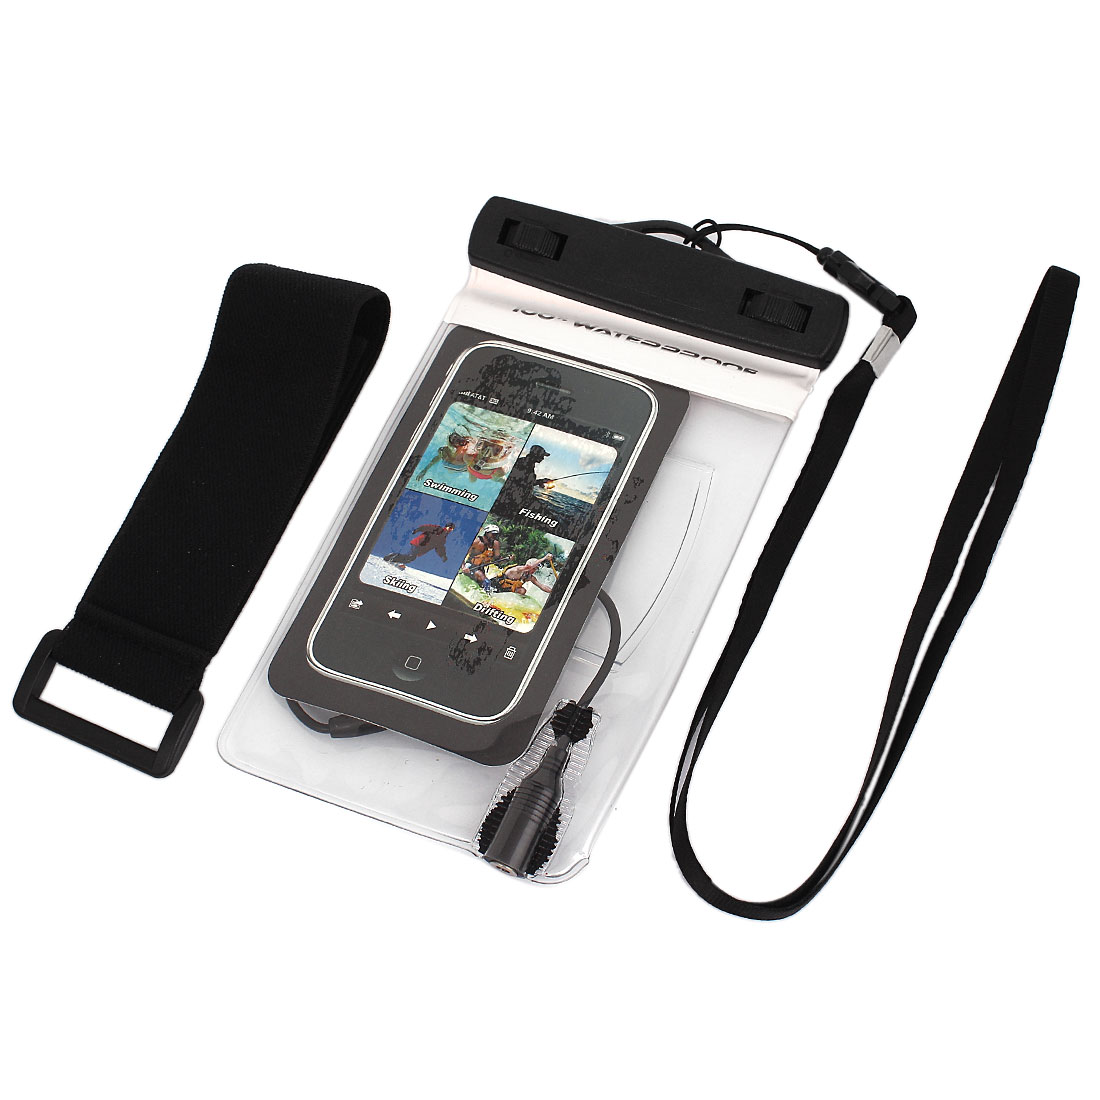 Waterproof Bag Case Holder Protector White for iPone 4G w Earphone Armband